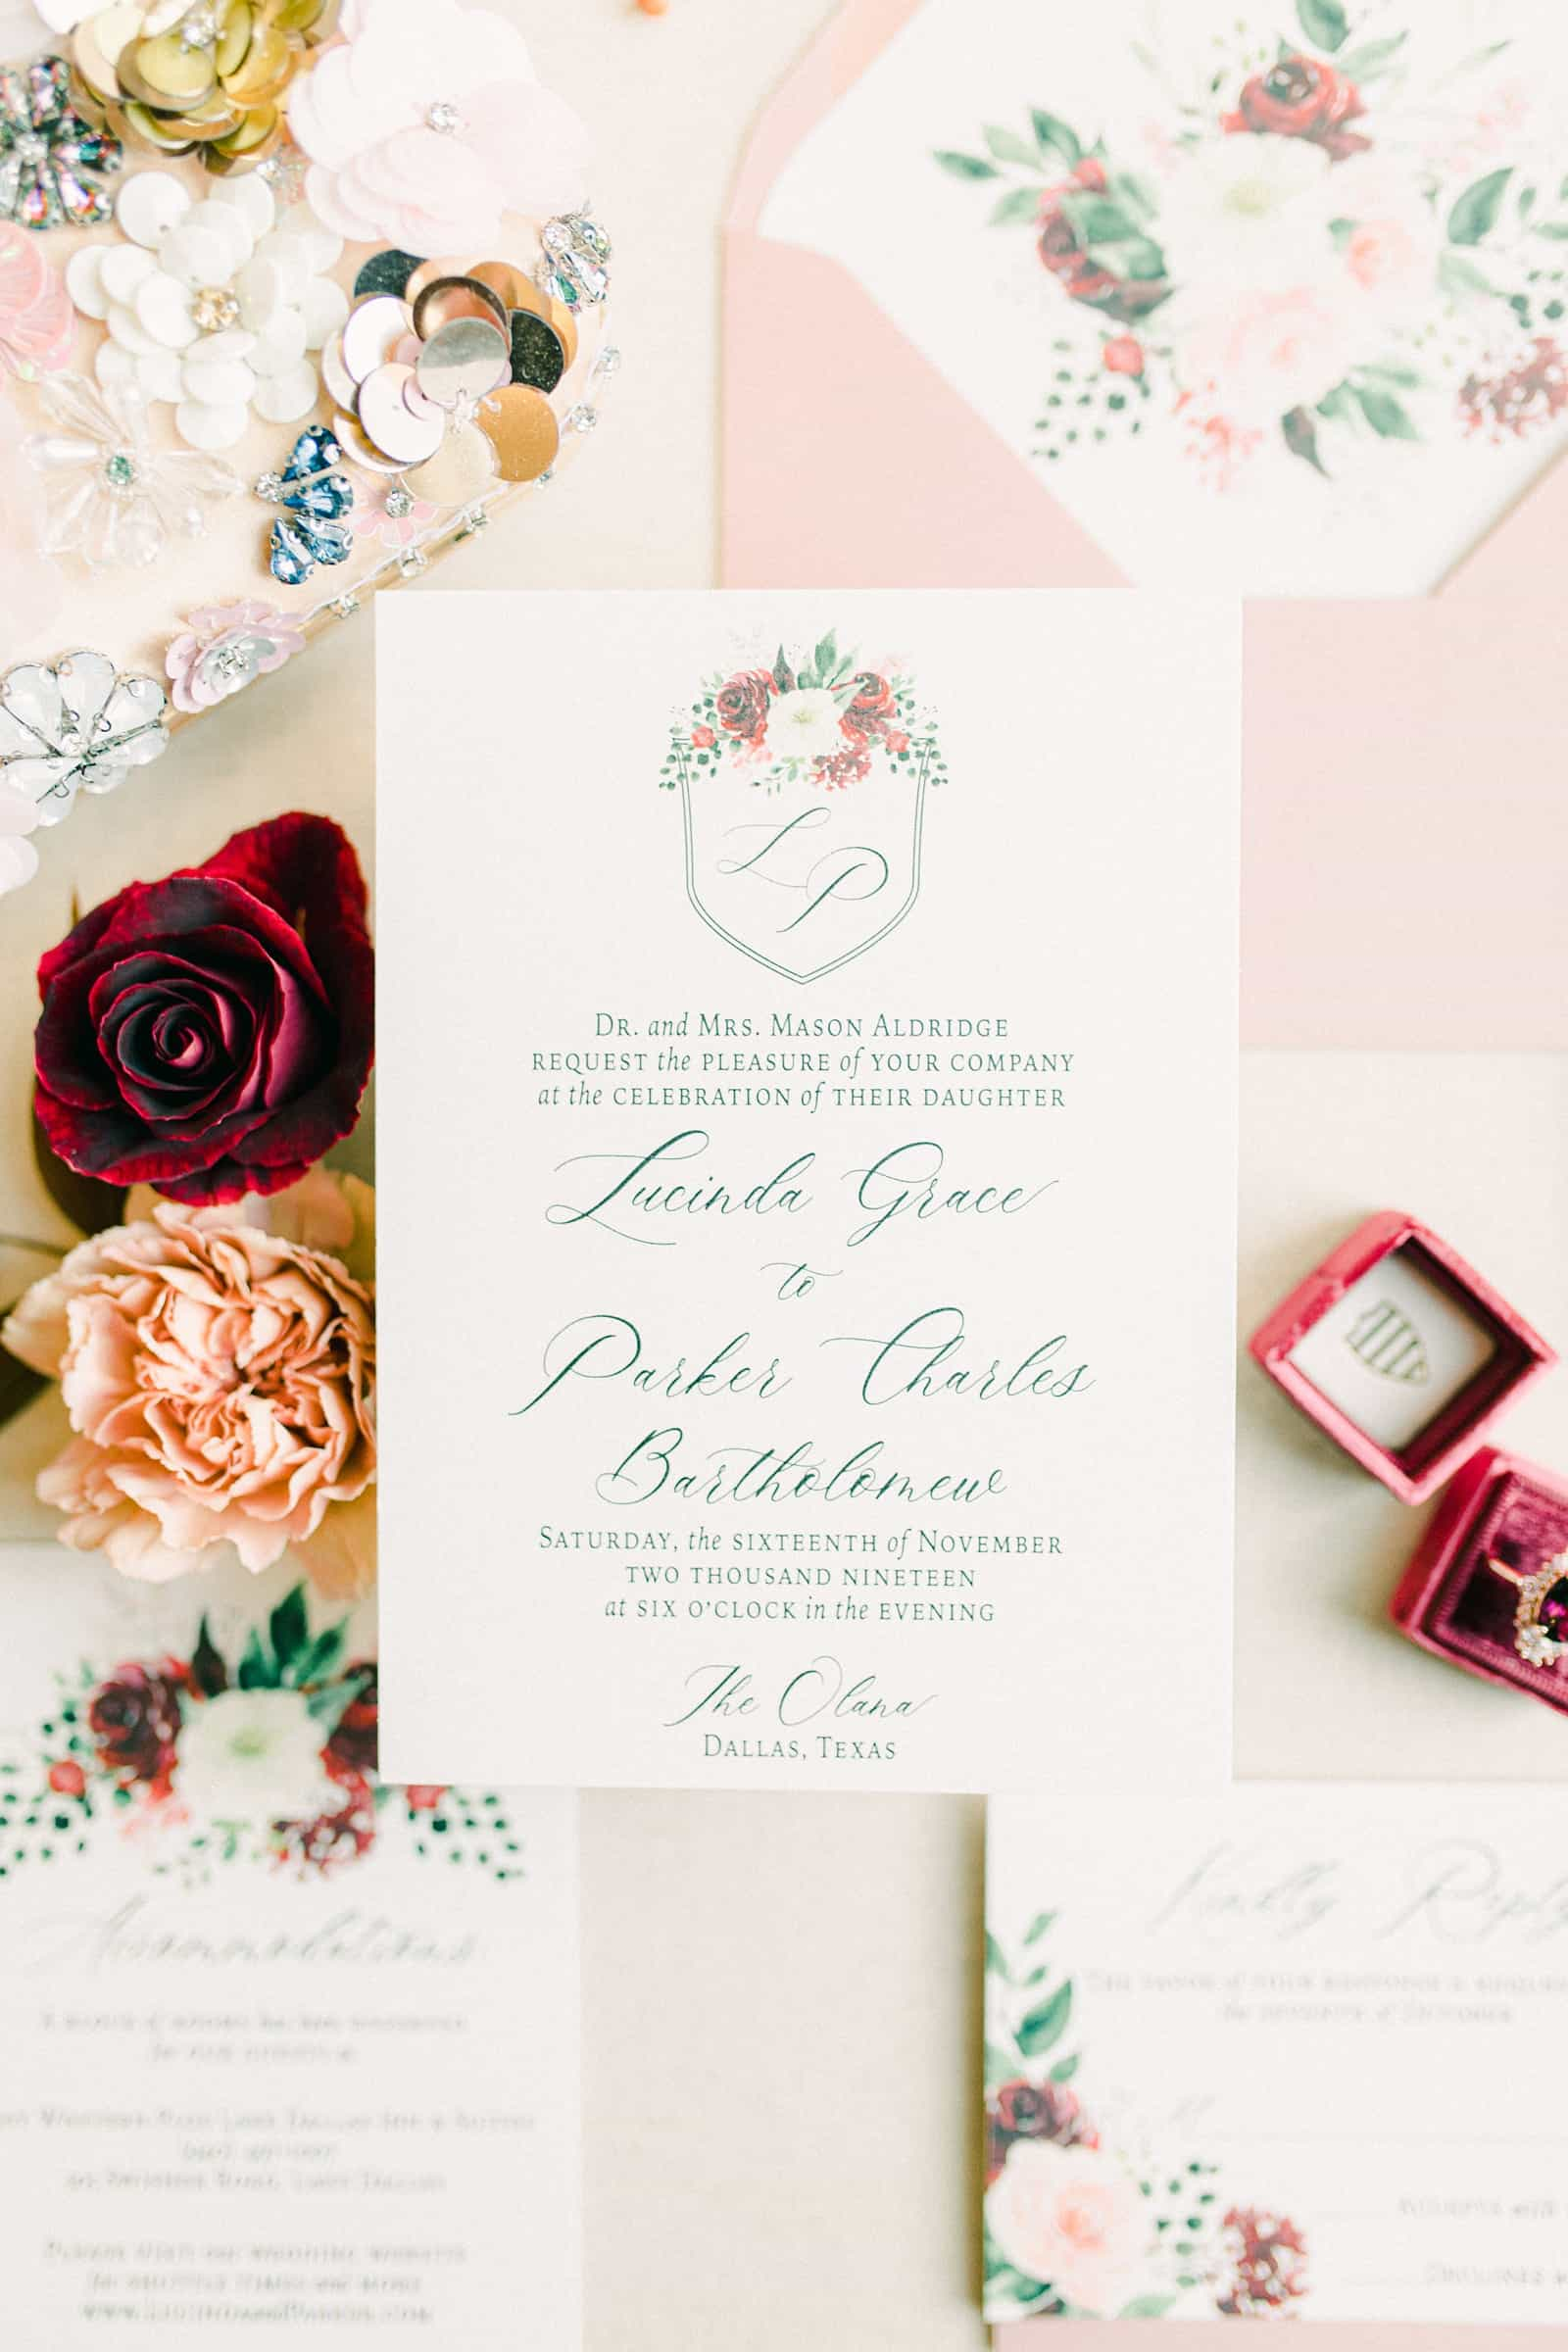 Monogrammed pink and red floral wedding invitations, modern invitation suite